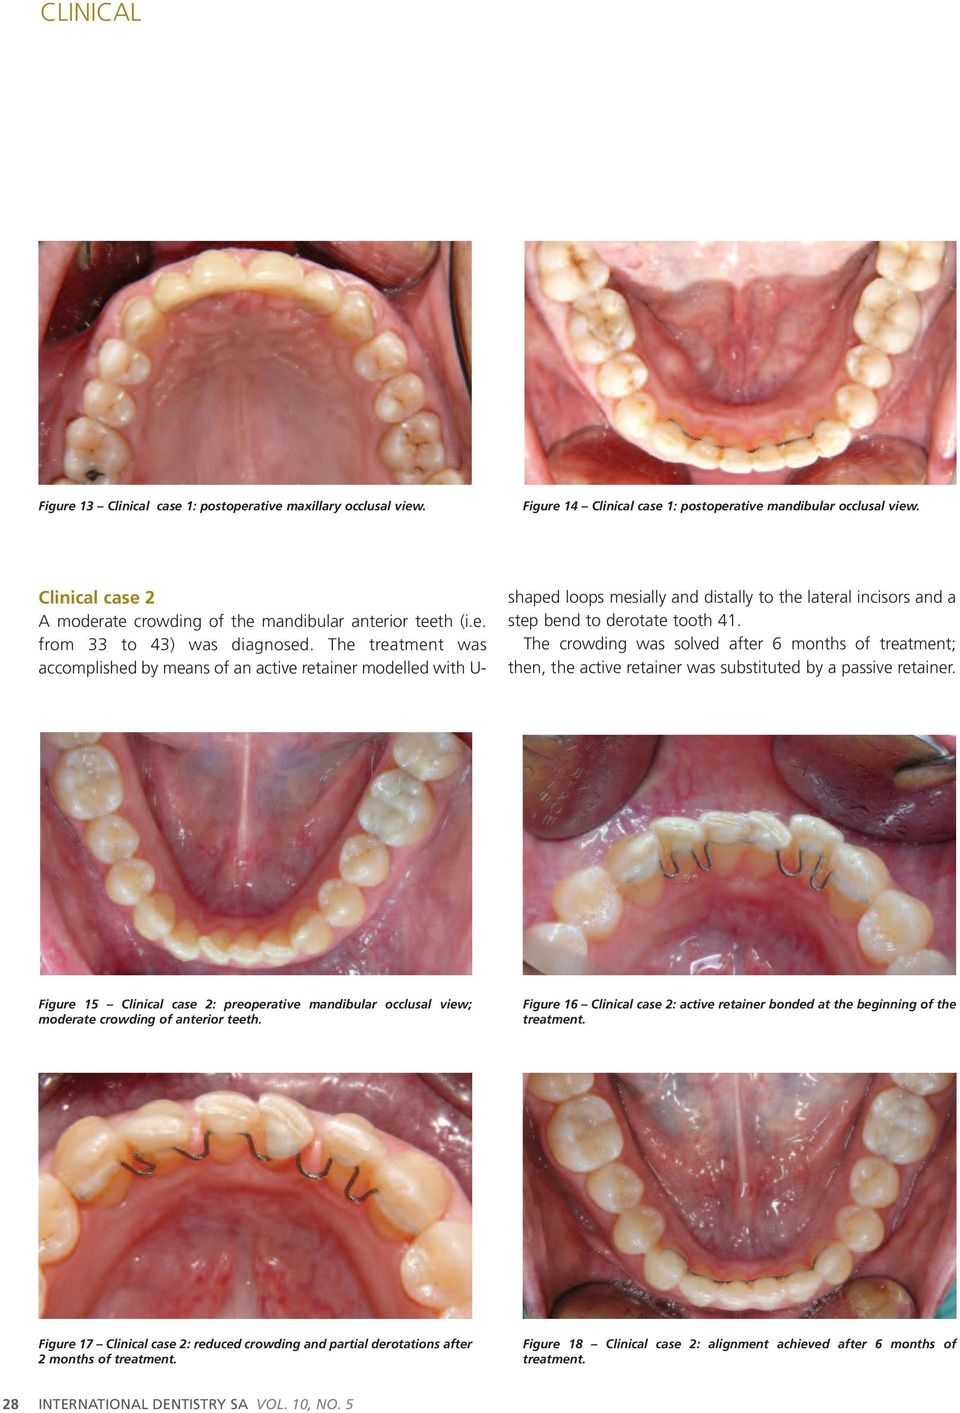 The treatment was accomplished by means of an active retainer modelled with U- shaped loops mesially and distally to the lateral incisors and a step bend to derotate tooth 41.